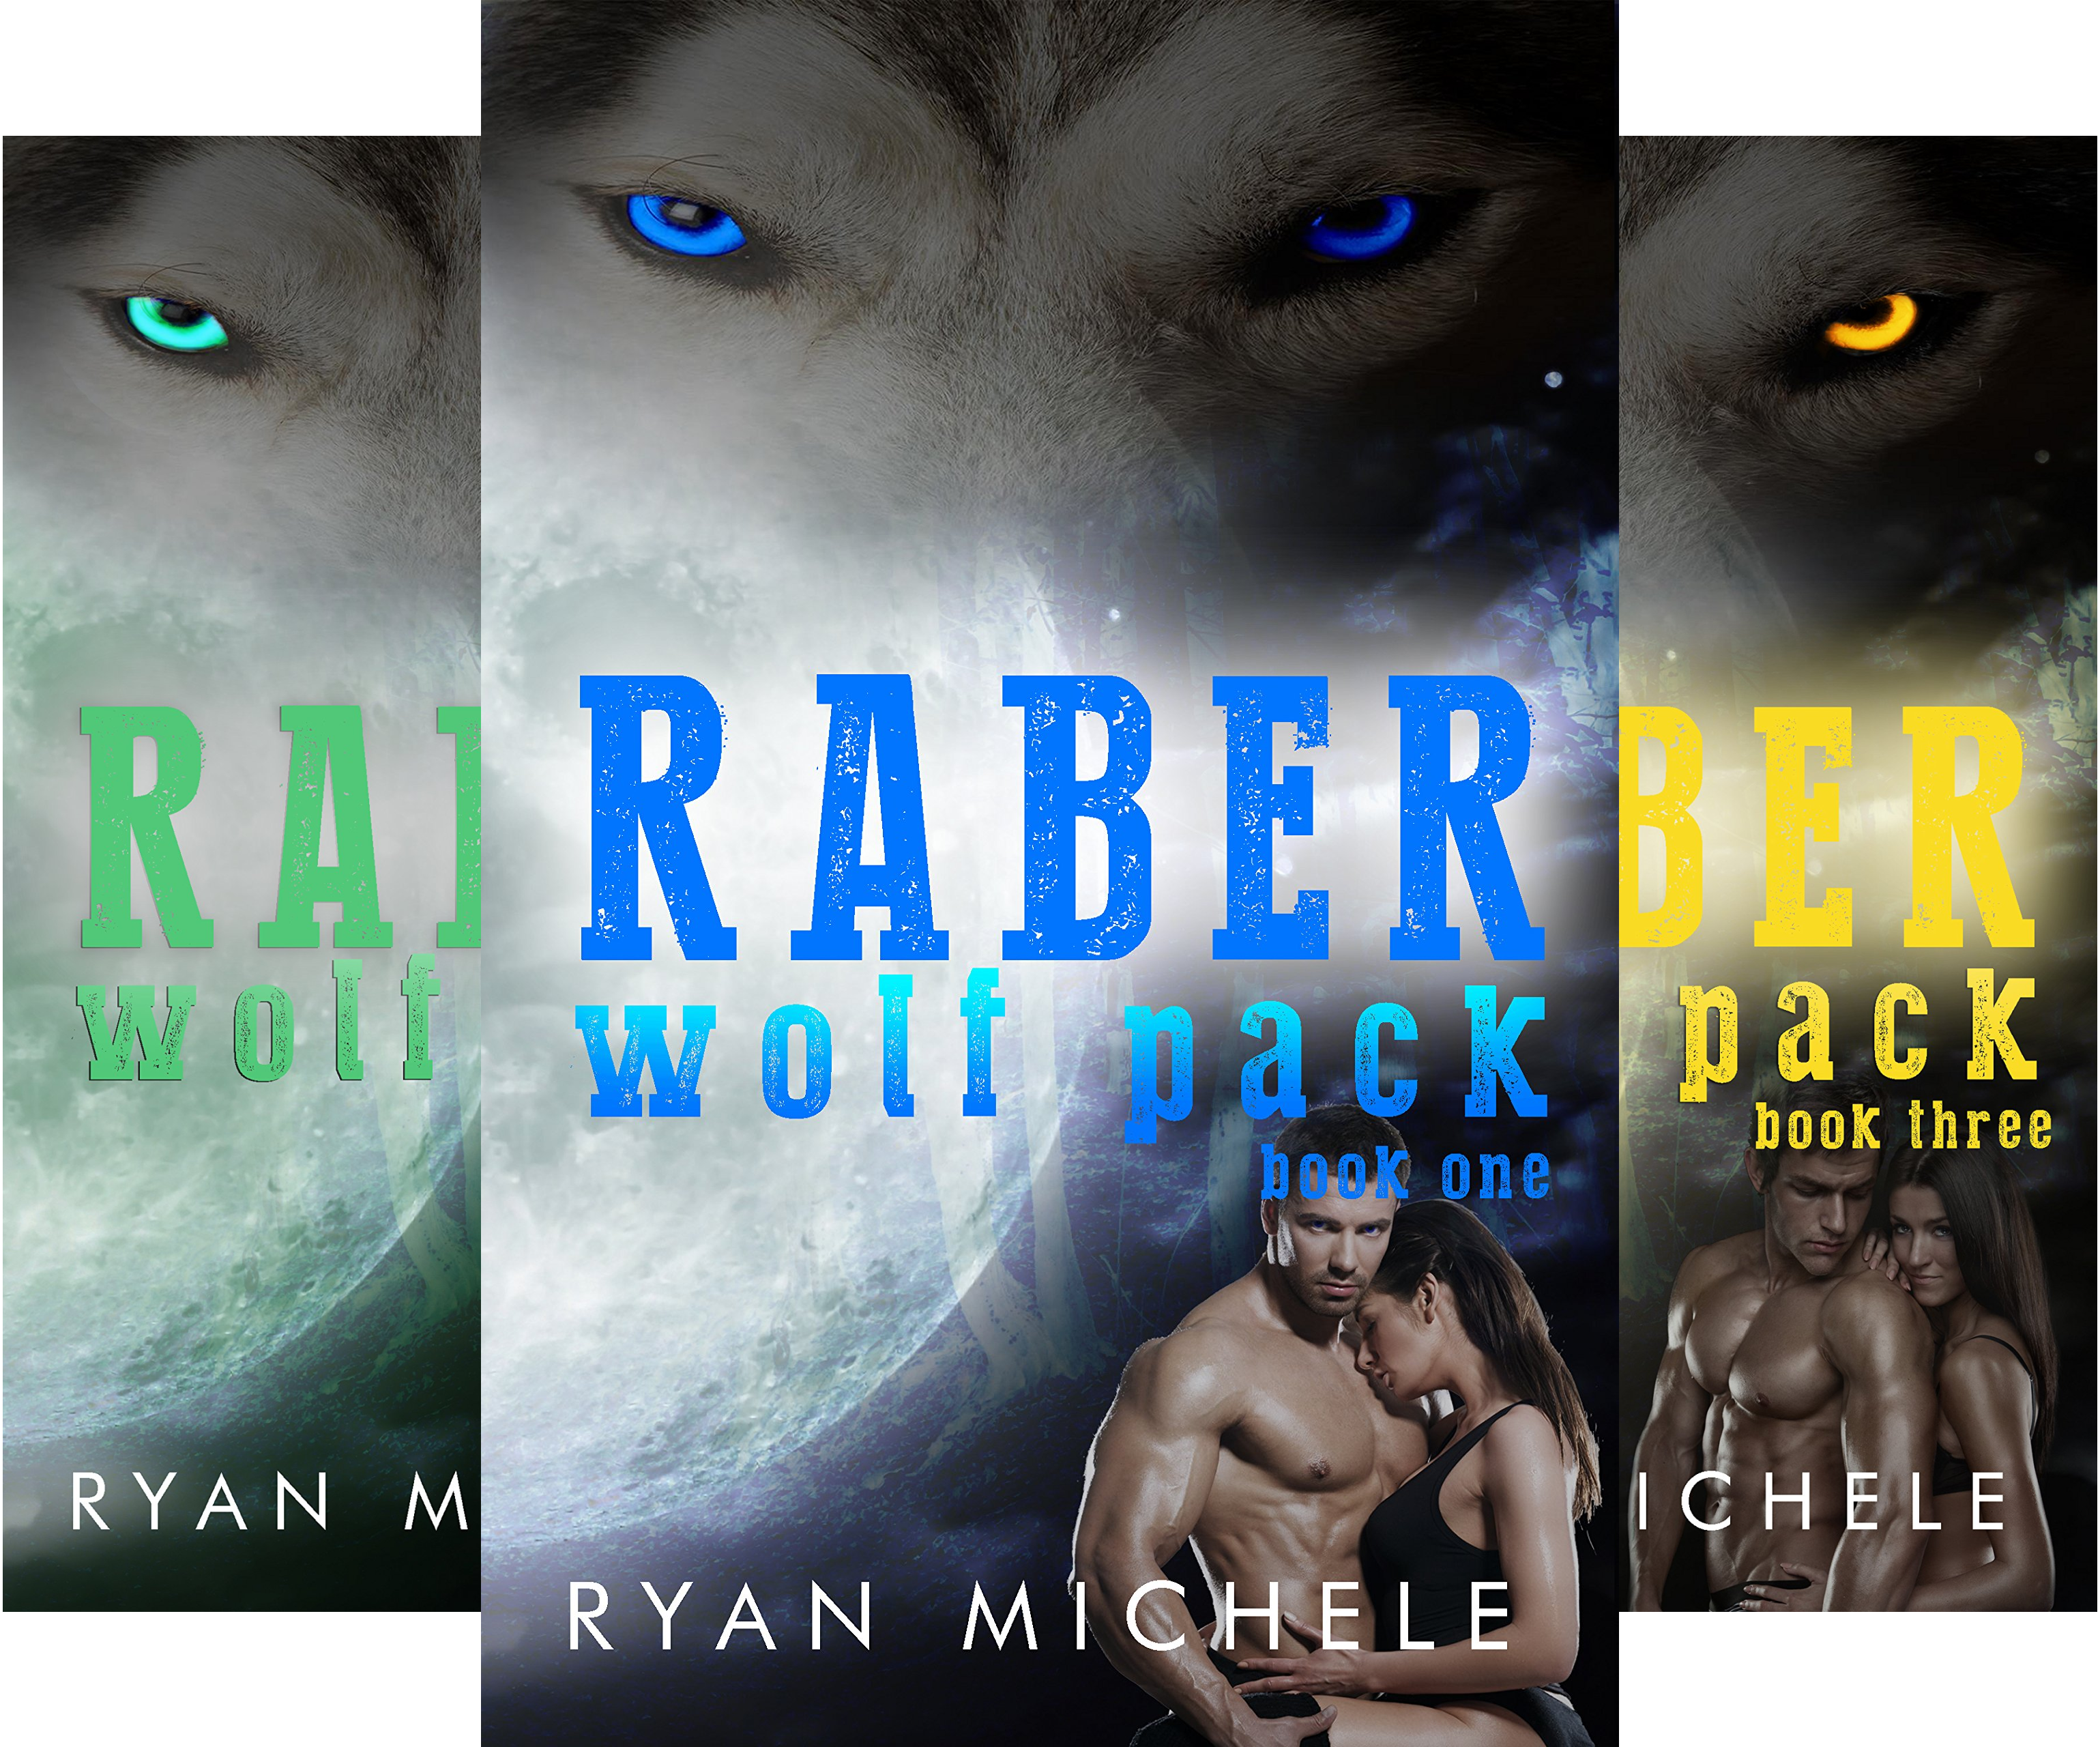 Raber Wolf Pack (3 Book Series)